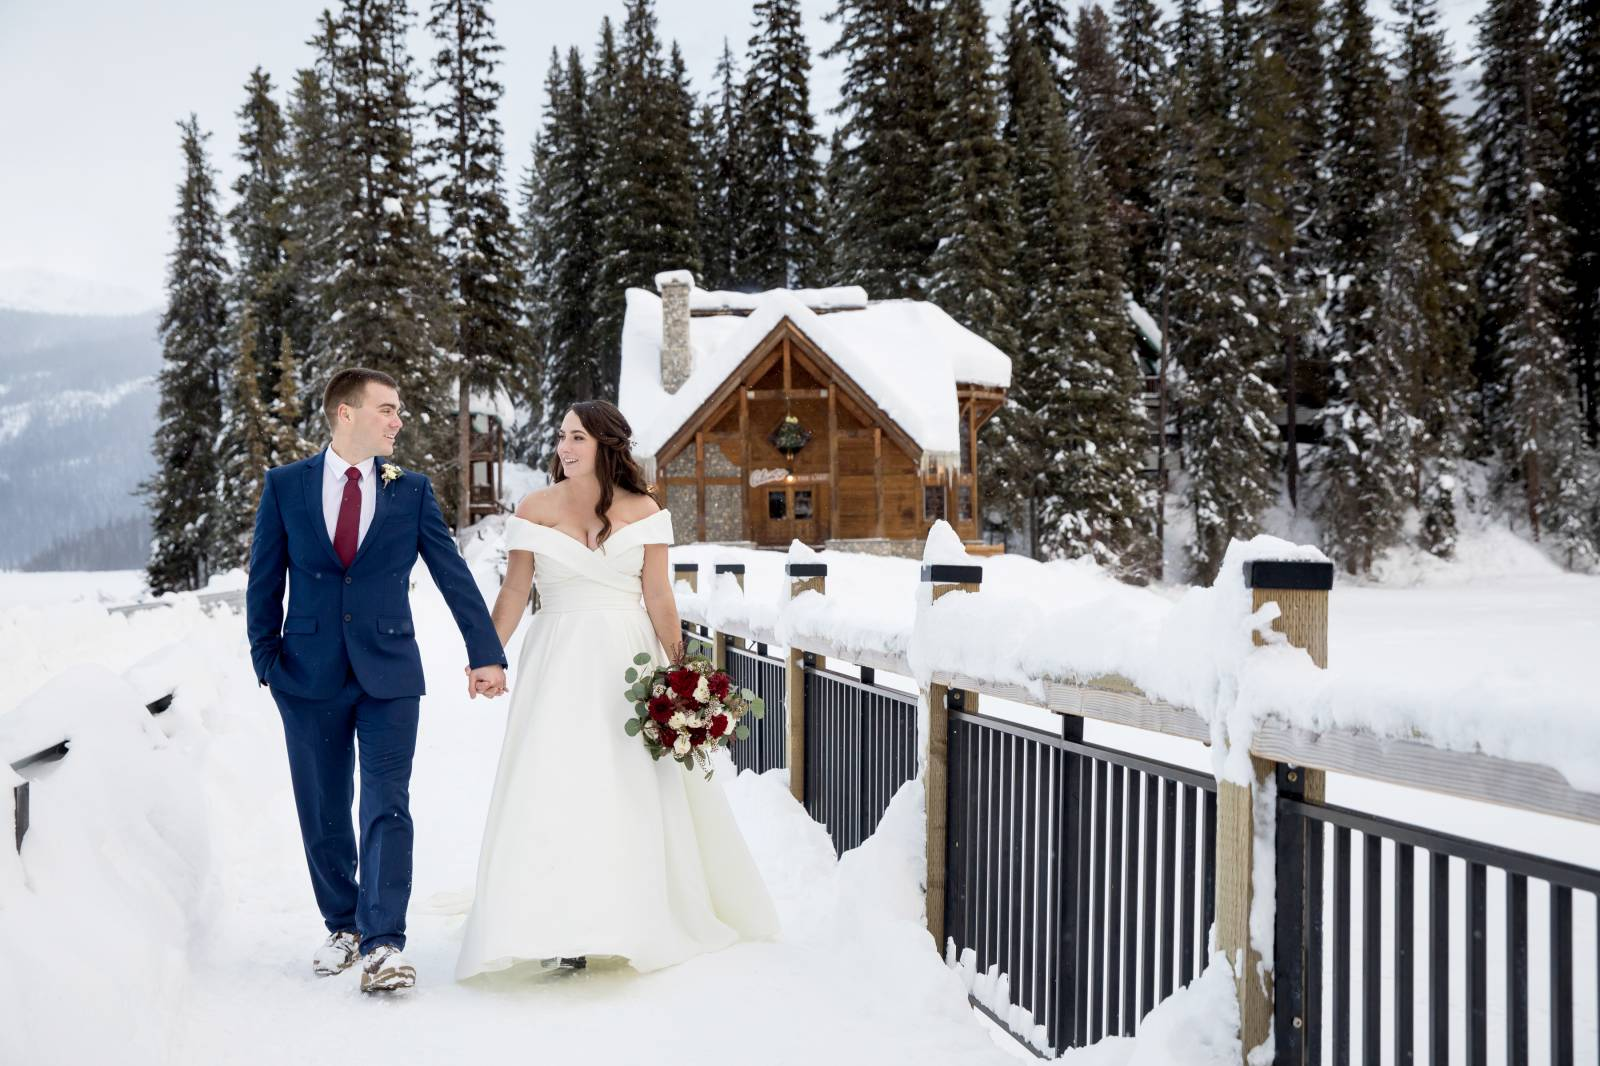 Emerald Lake Lodge Outdoor ceremony, Cilantro Patio Wedding Ceremony, Emerald Lake Lodge winter elop